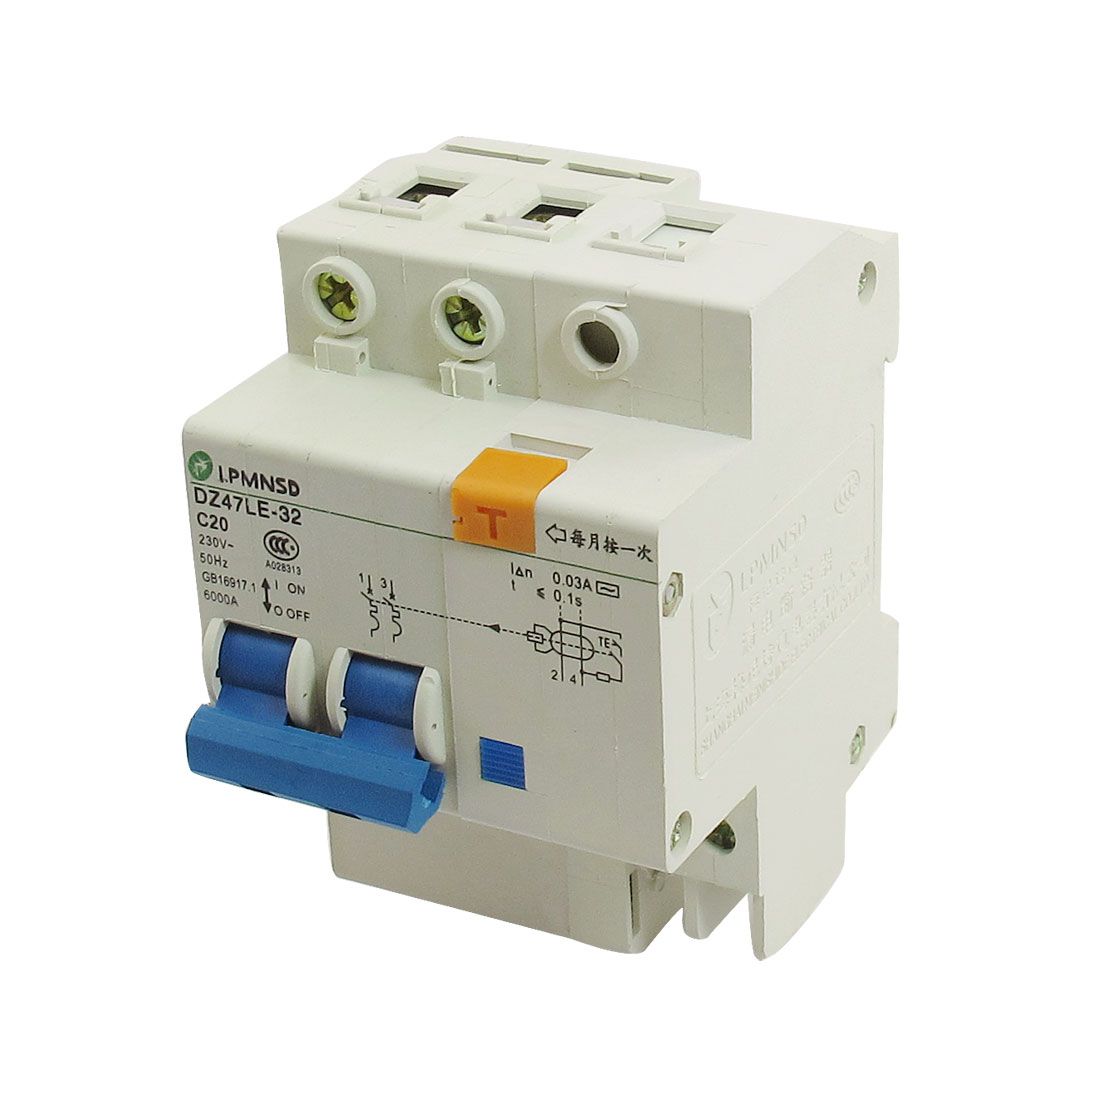 DZ47LE-32 230VAC 20A 2P 6000A Breaking Capacity Earth Leakage Circuit Breaker